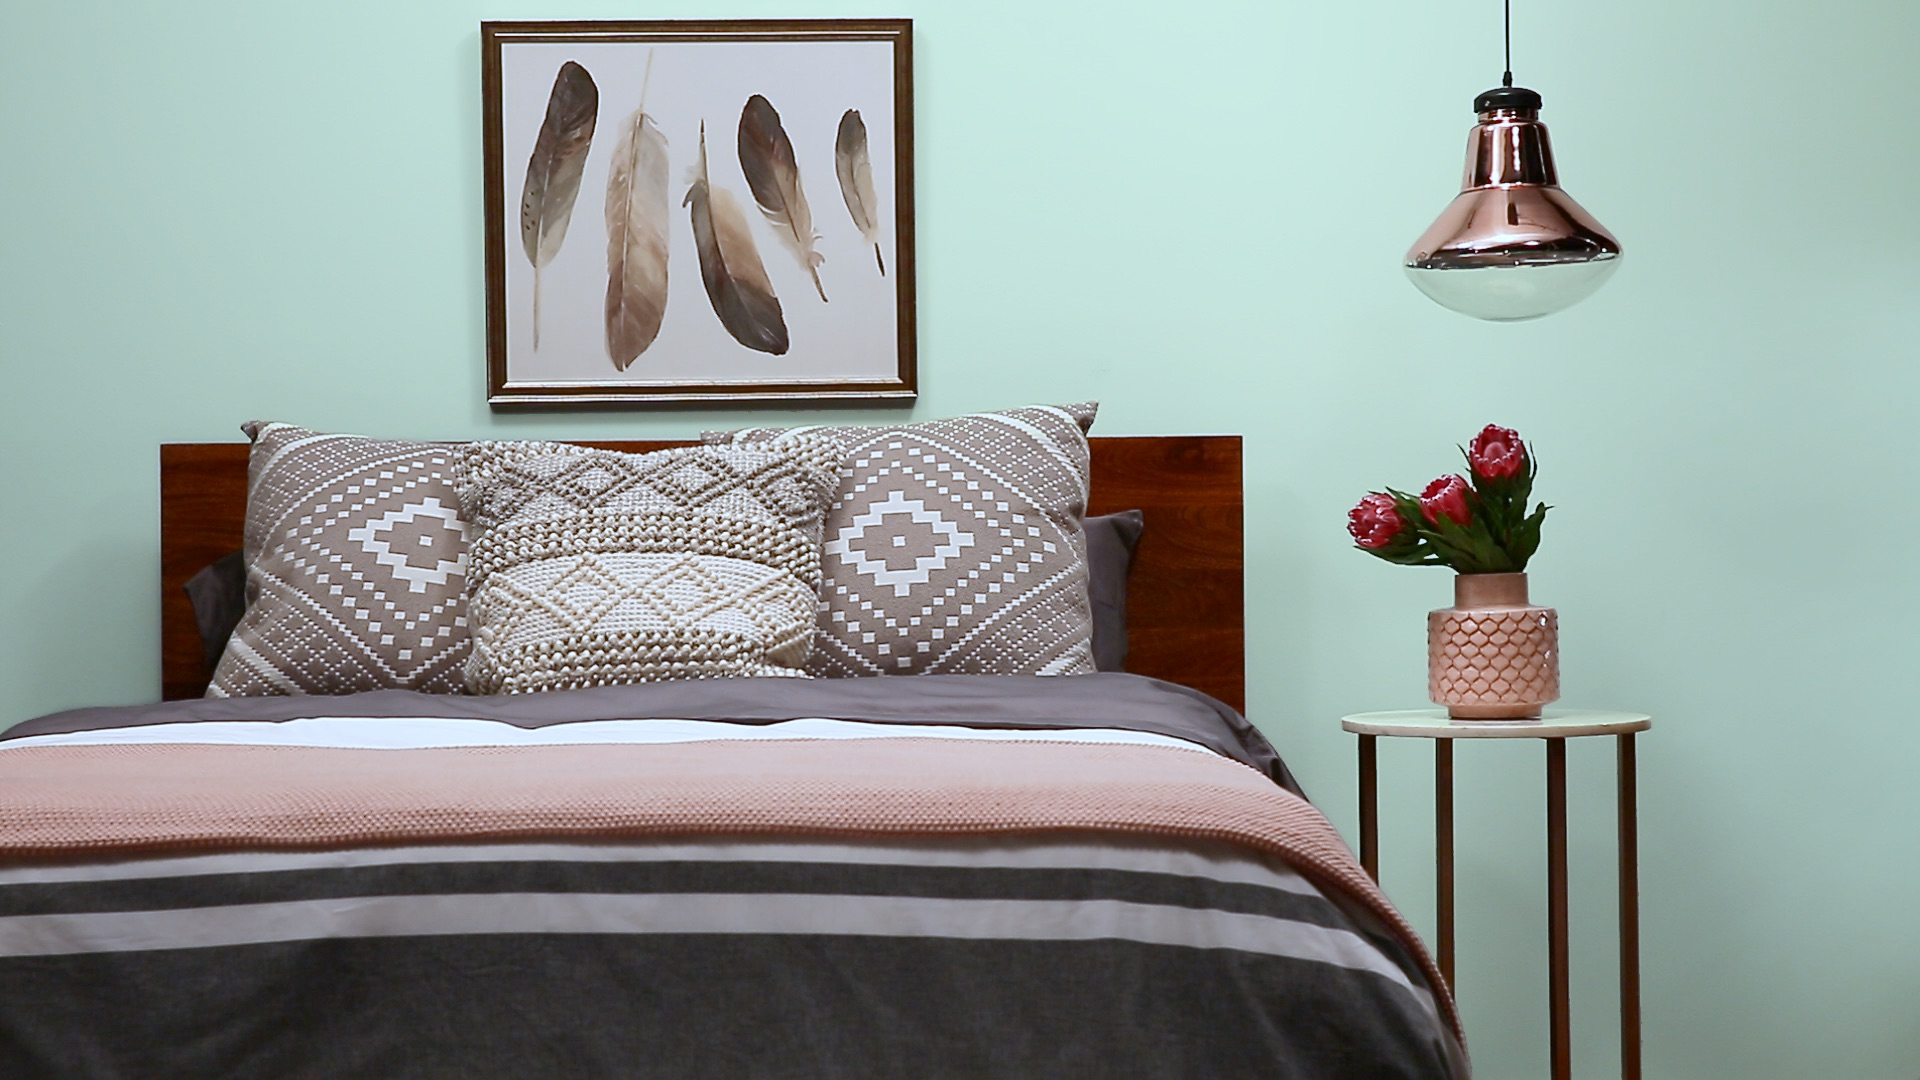 valspar bedroom colors the 5 paint colors that will make you happiest how to 13706